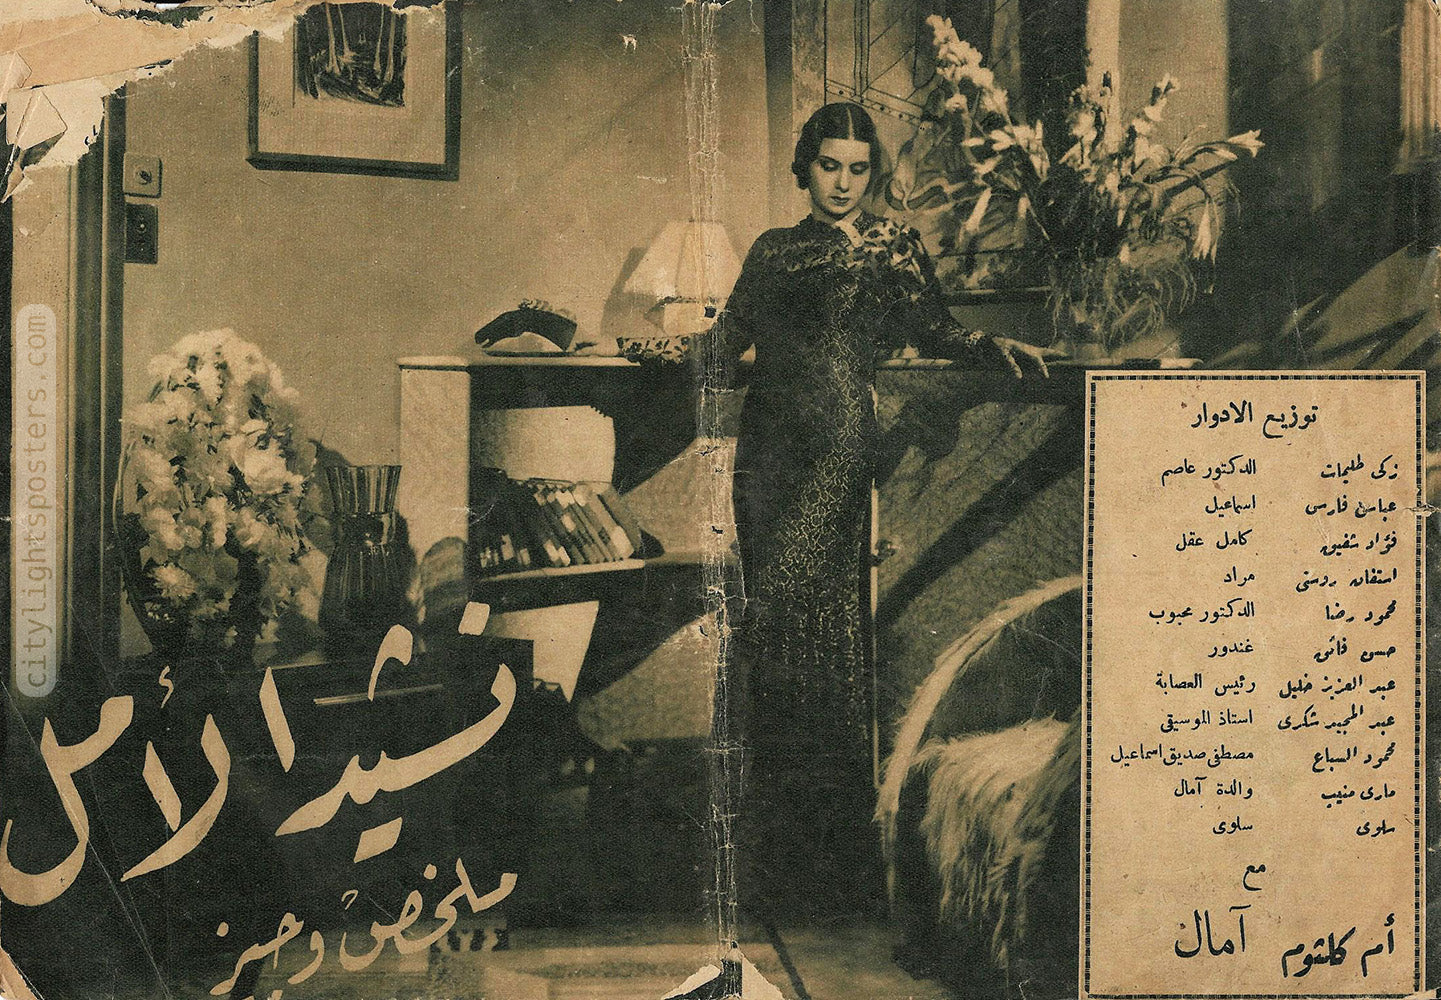 Young Umm Kulthum on the booklet cover of The Chant of Hope (1937).